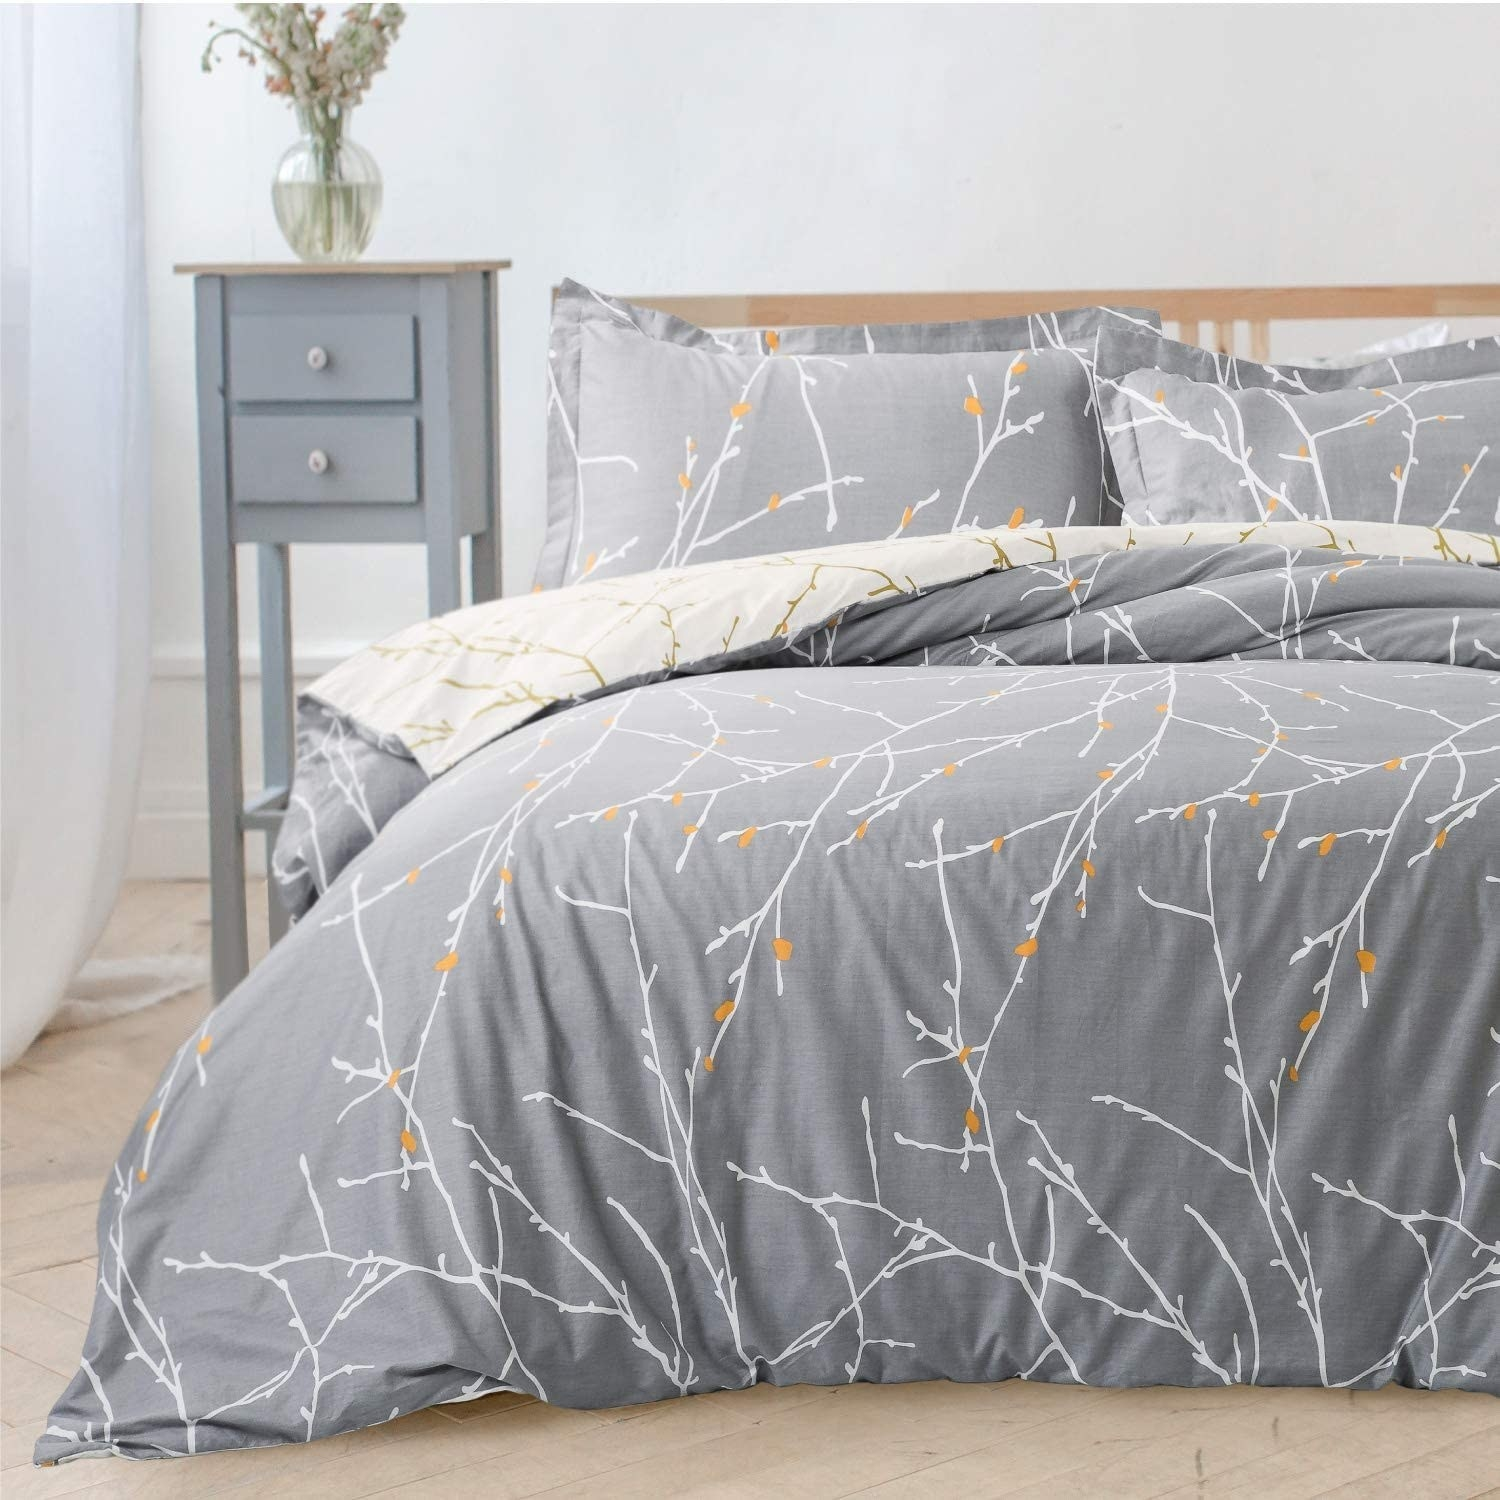 A duvet cover on a bed